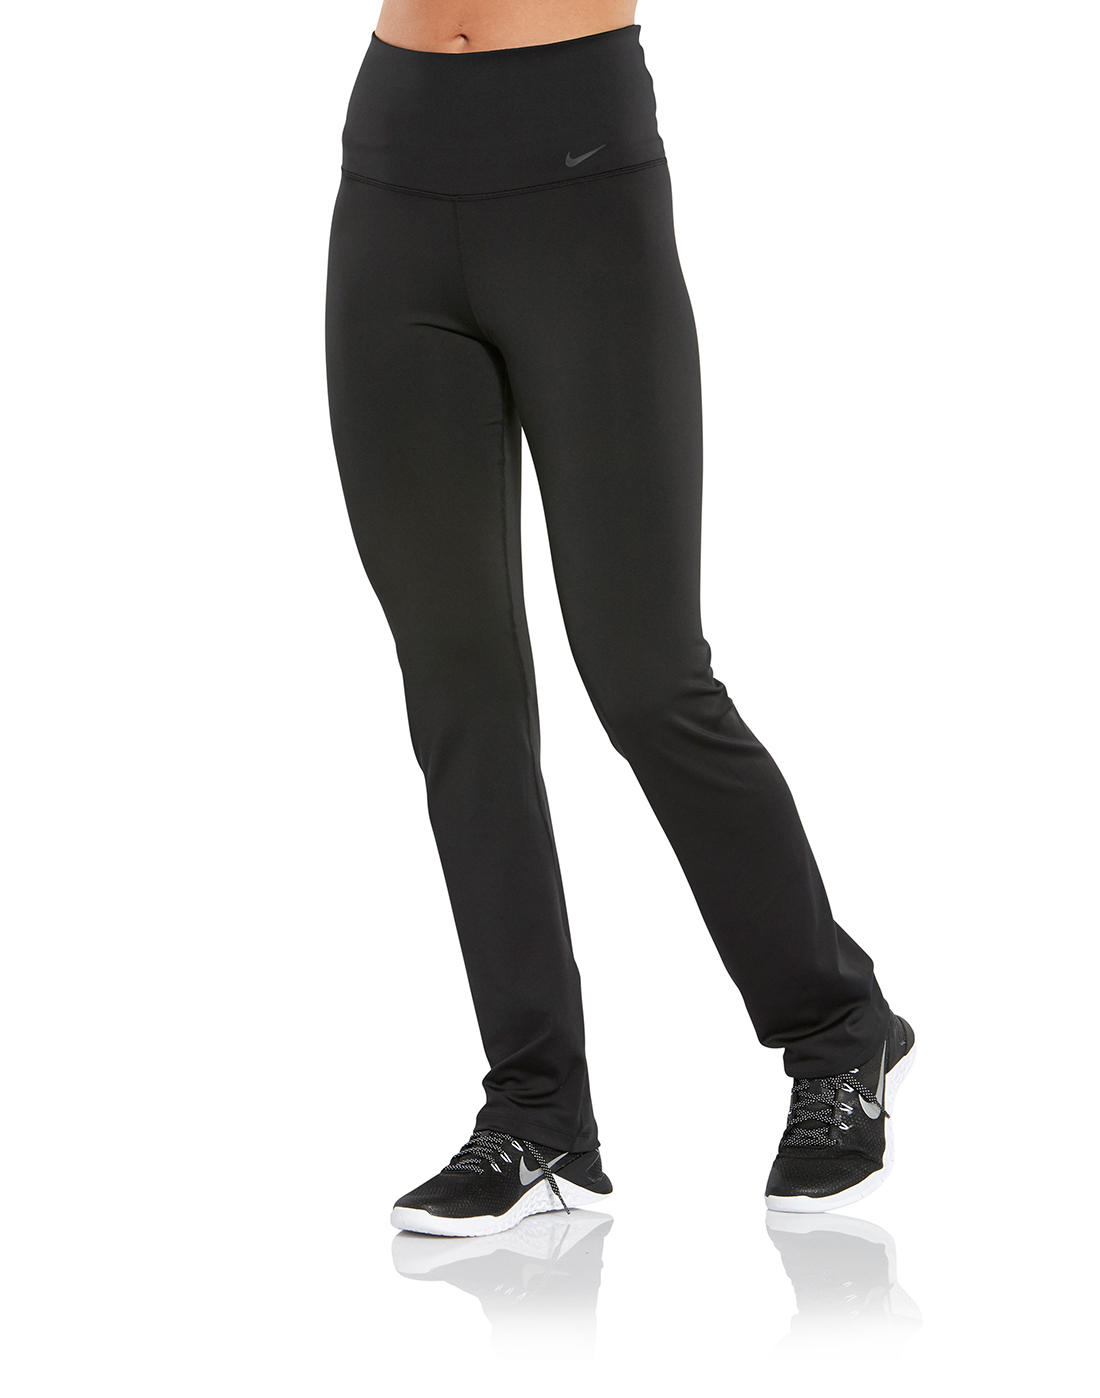 000c200ec1154 Women's Black Nike Gym Pants | Life Style Sports